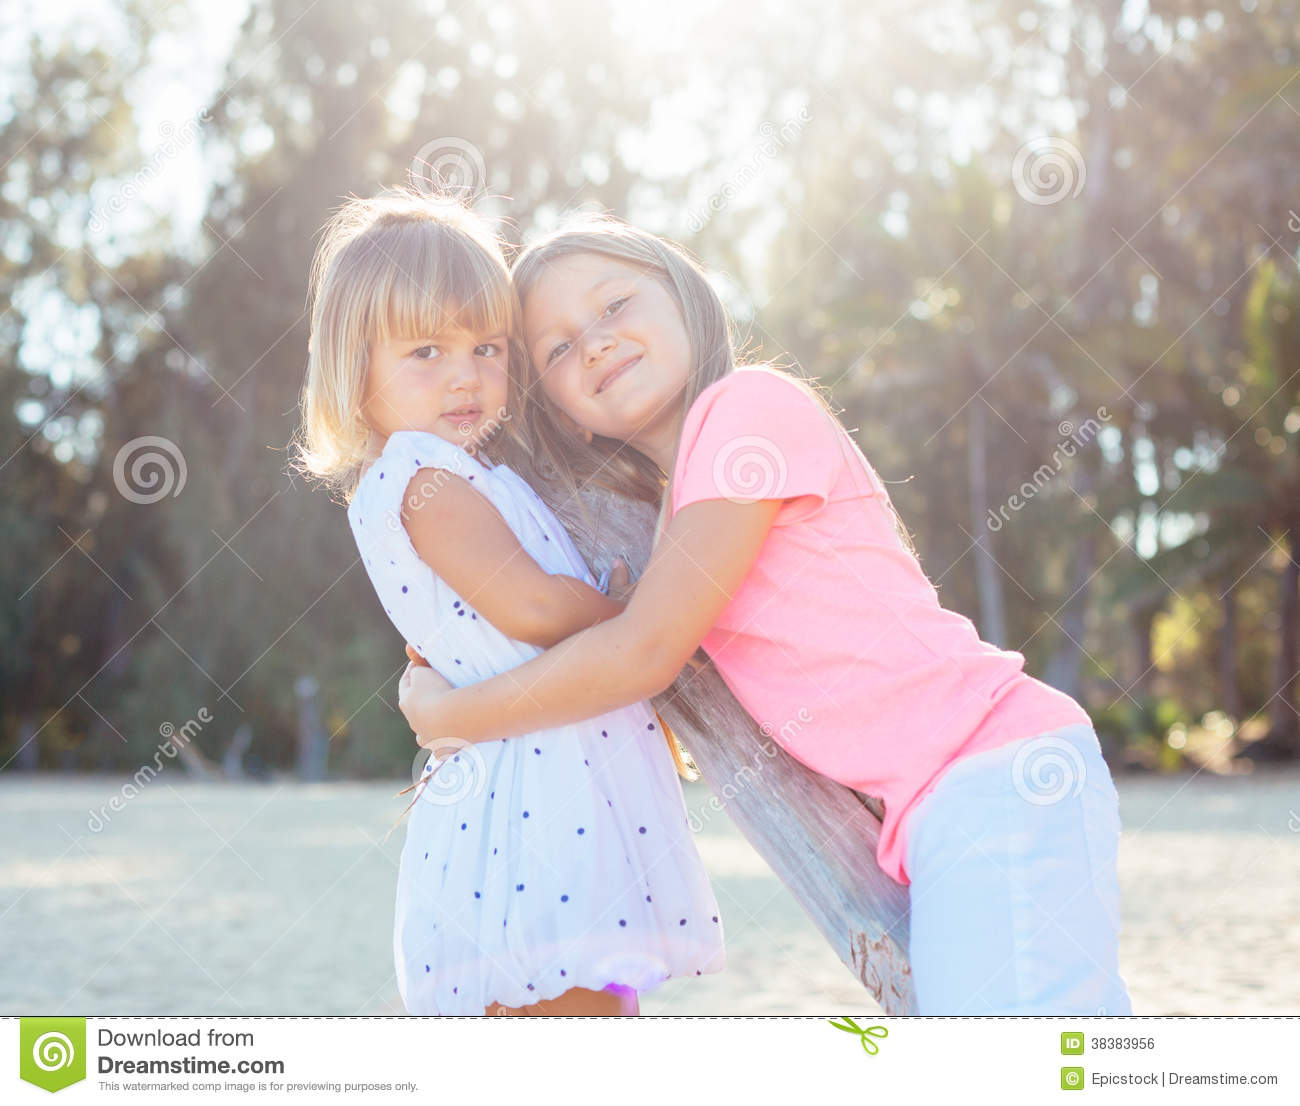 Young Happy Beautiful Family Playing Together On The Beach: Adorable Young Sisters Stock Photo. Image Of Cheerful